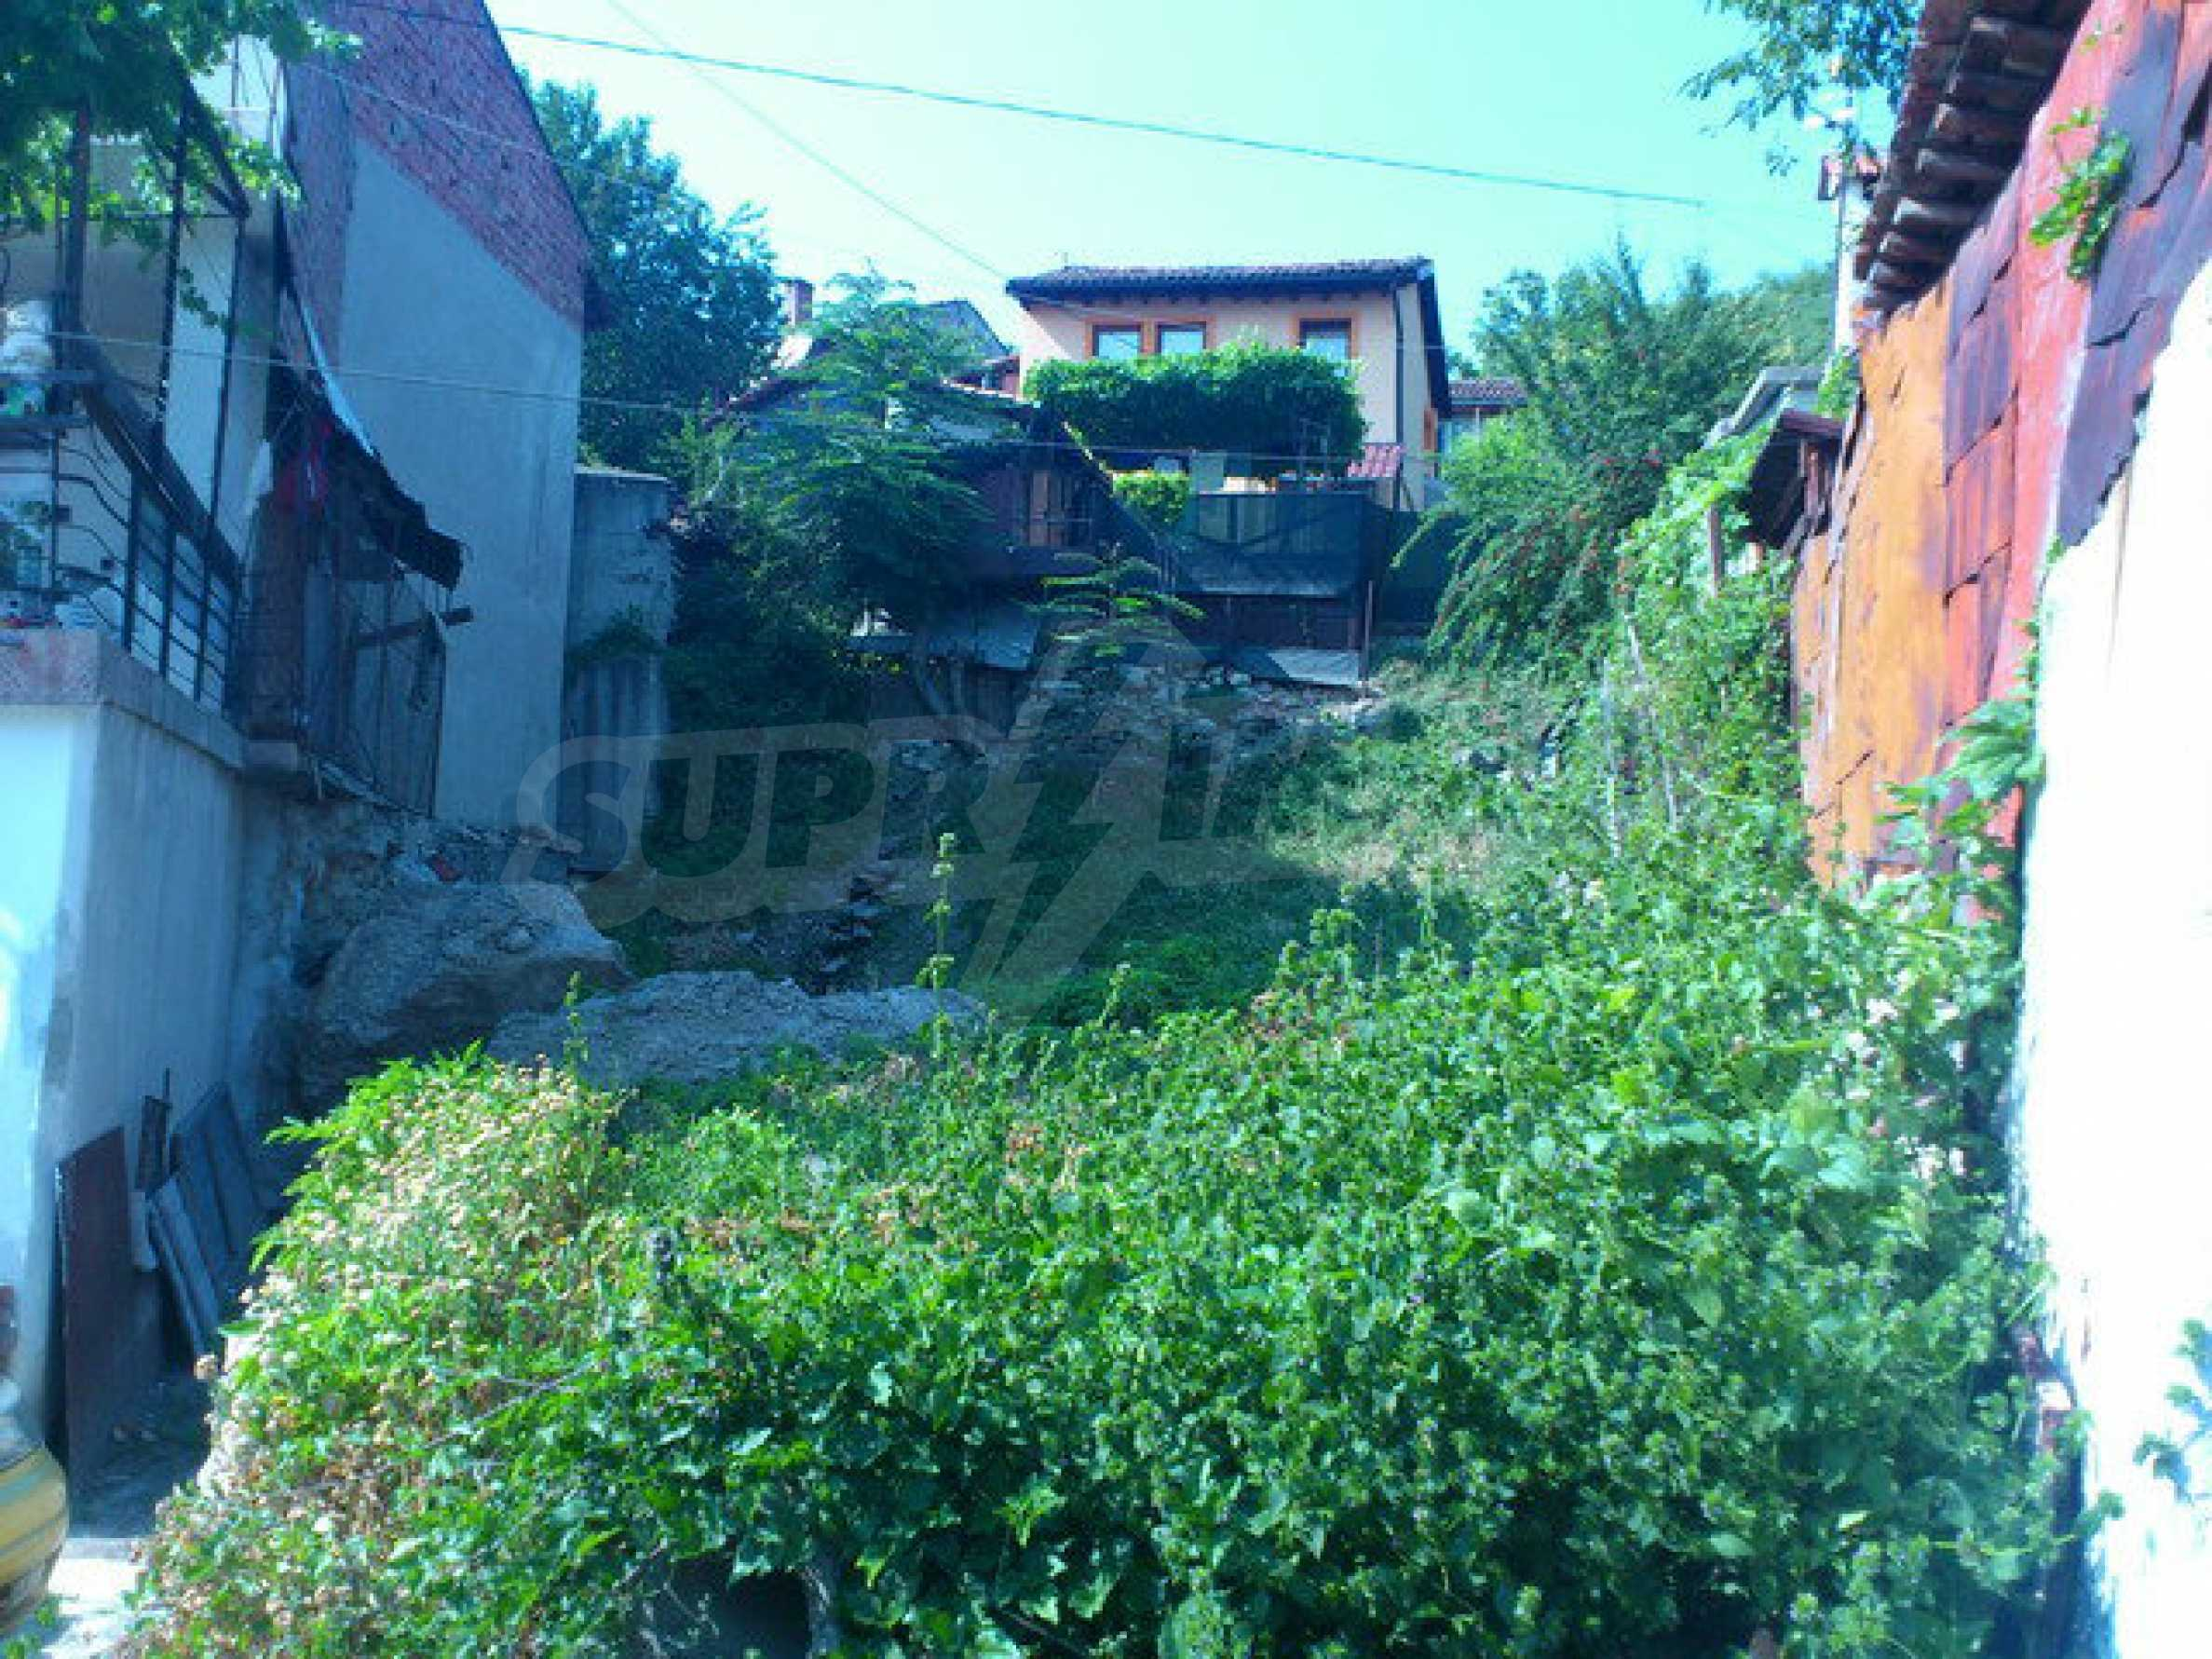 Regulated land in the old part of Veliko Tarnovo